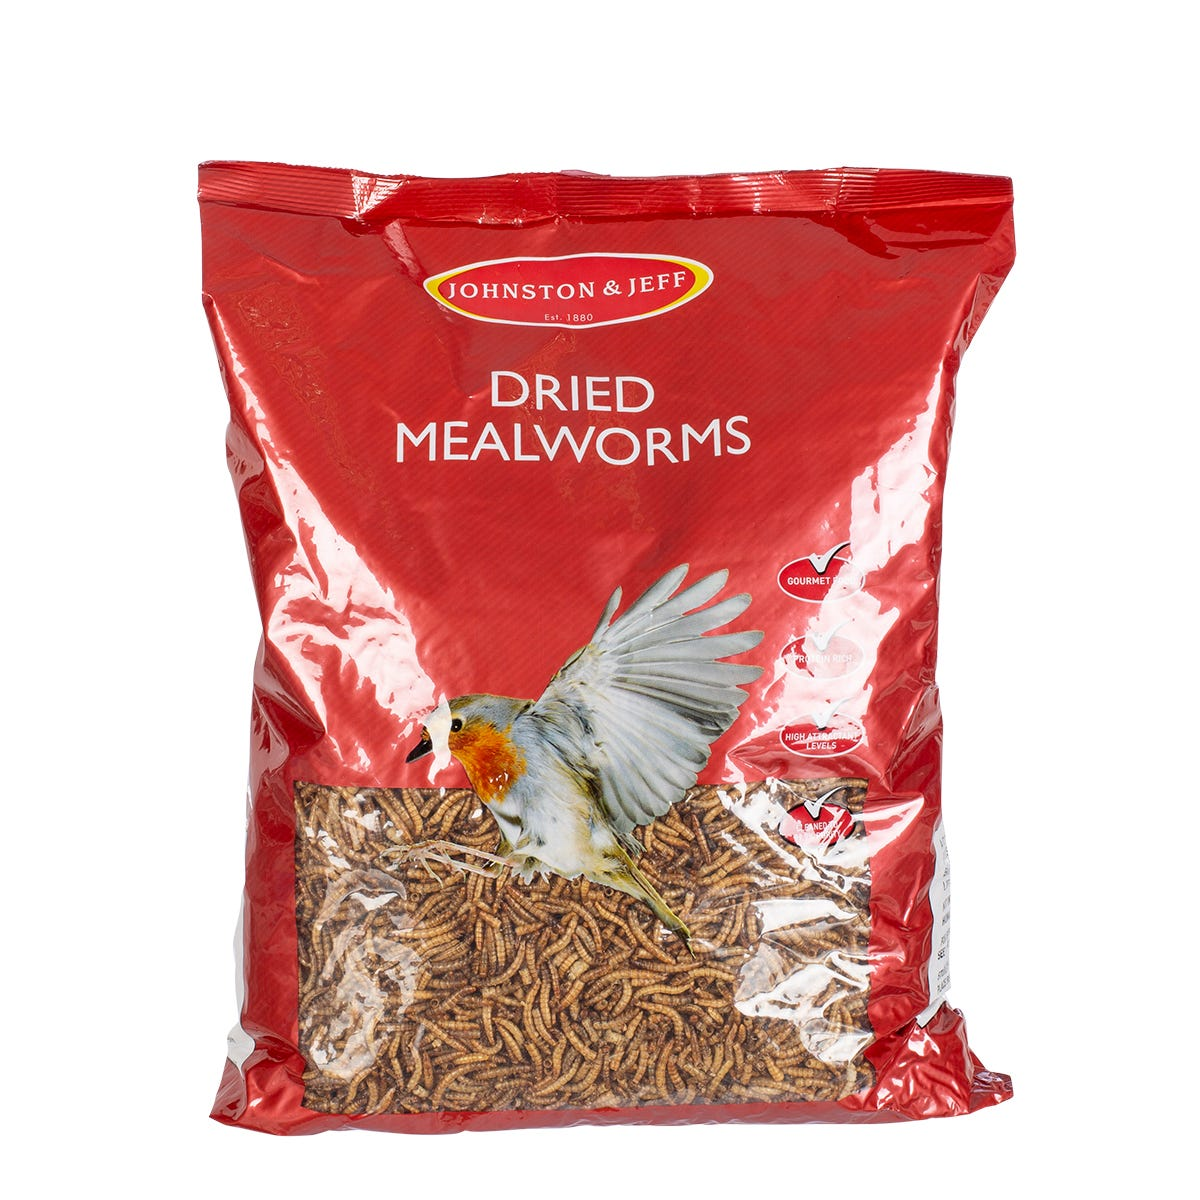 Compare prices for Johnston and Jeff Dried Mealworms - 1kg